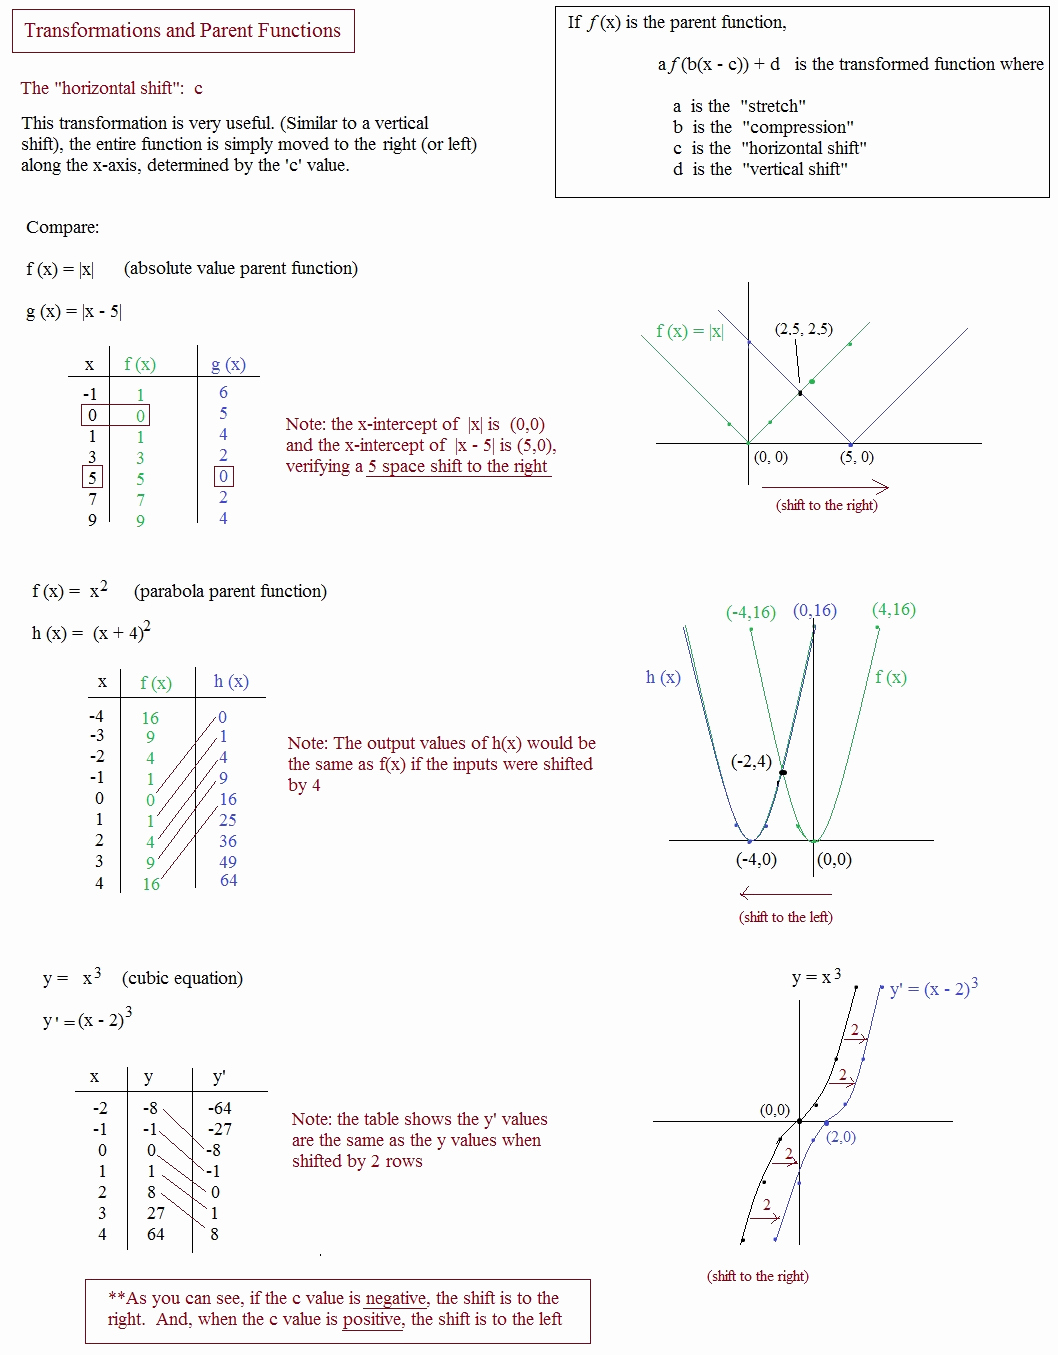 Transformations Of Functions Worksheet Answers Inspirational Math Plane Graphing I Transformations & Parent Functions